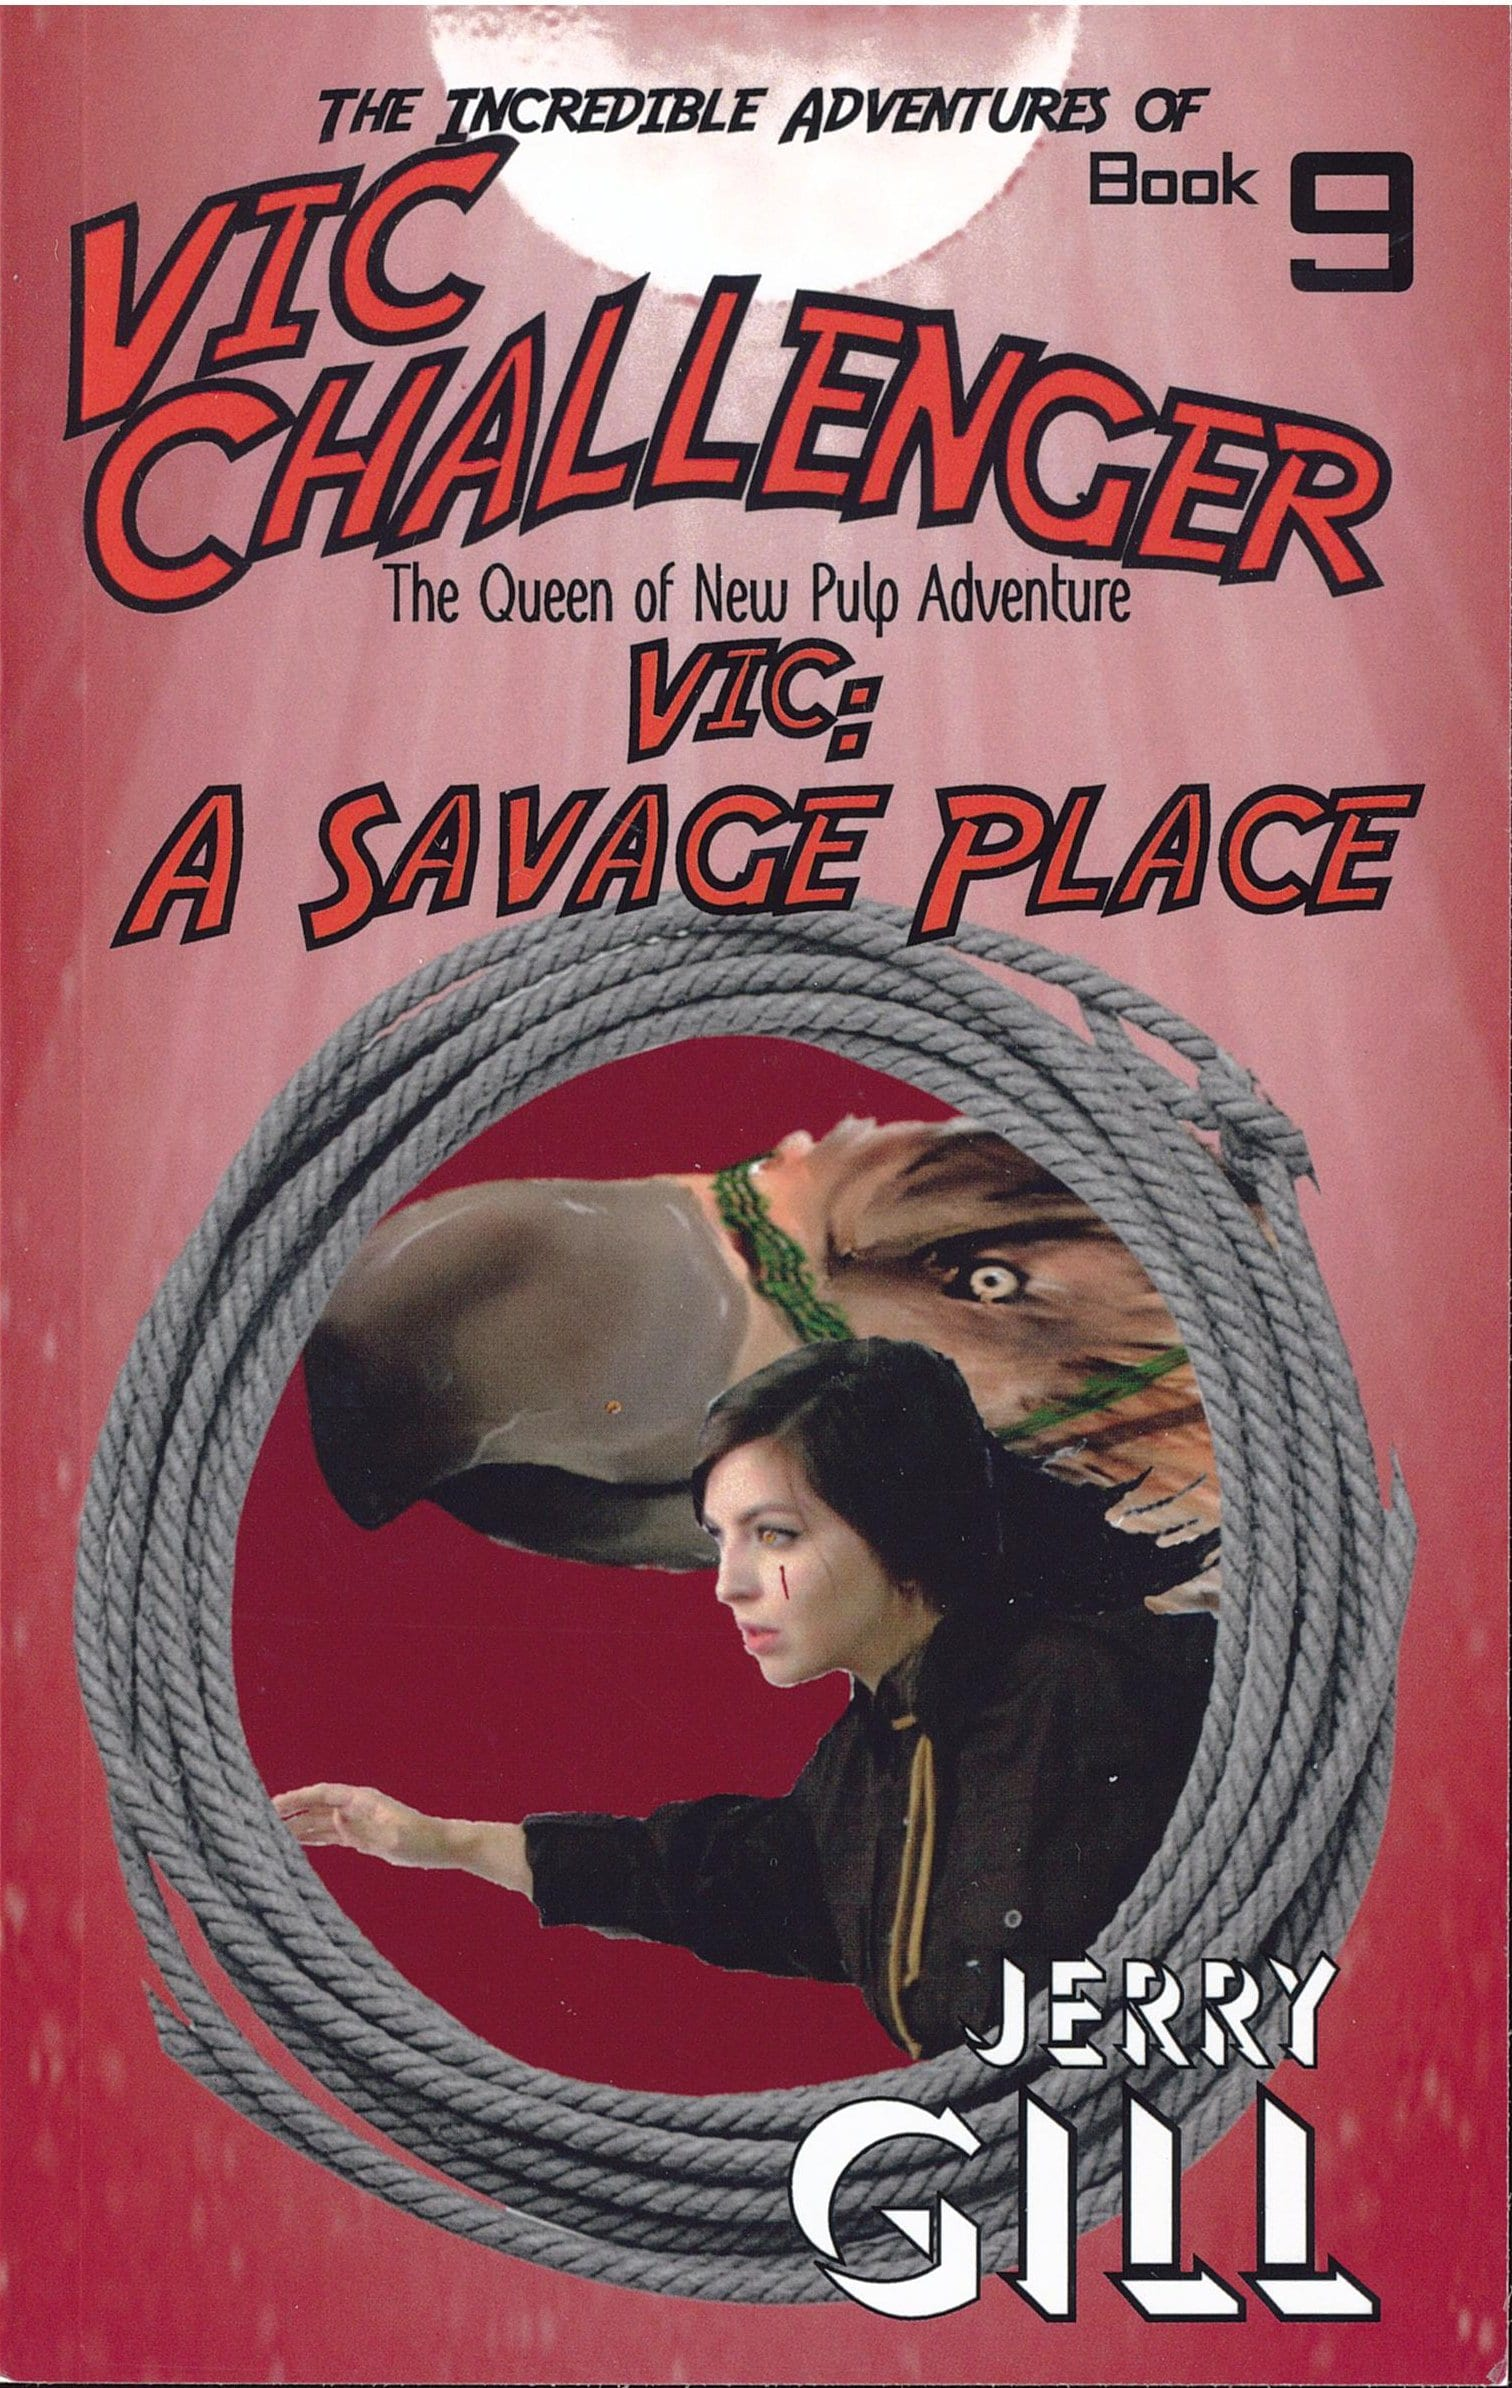 Vic Challenger - In A Savage Place Book Review